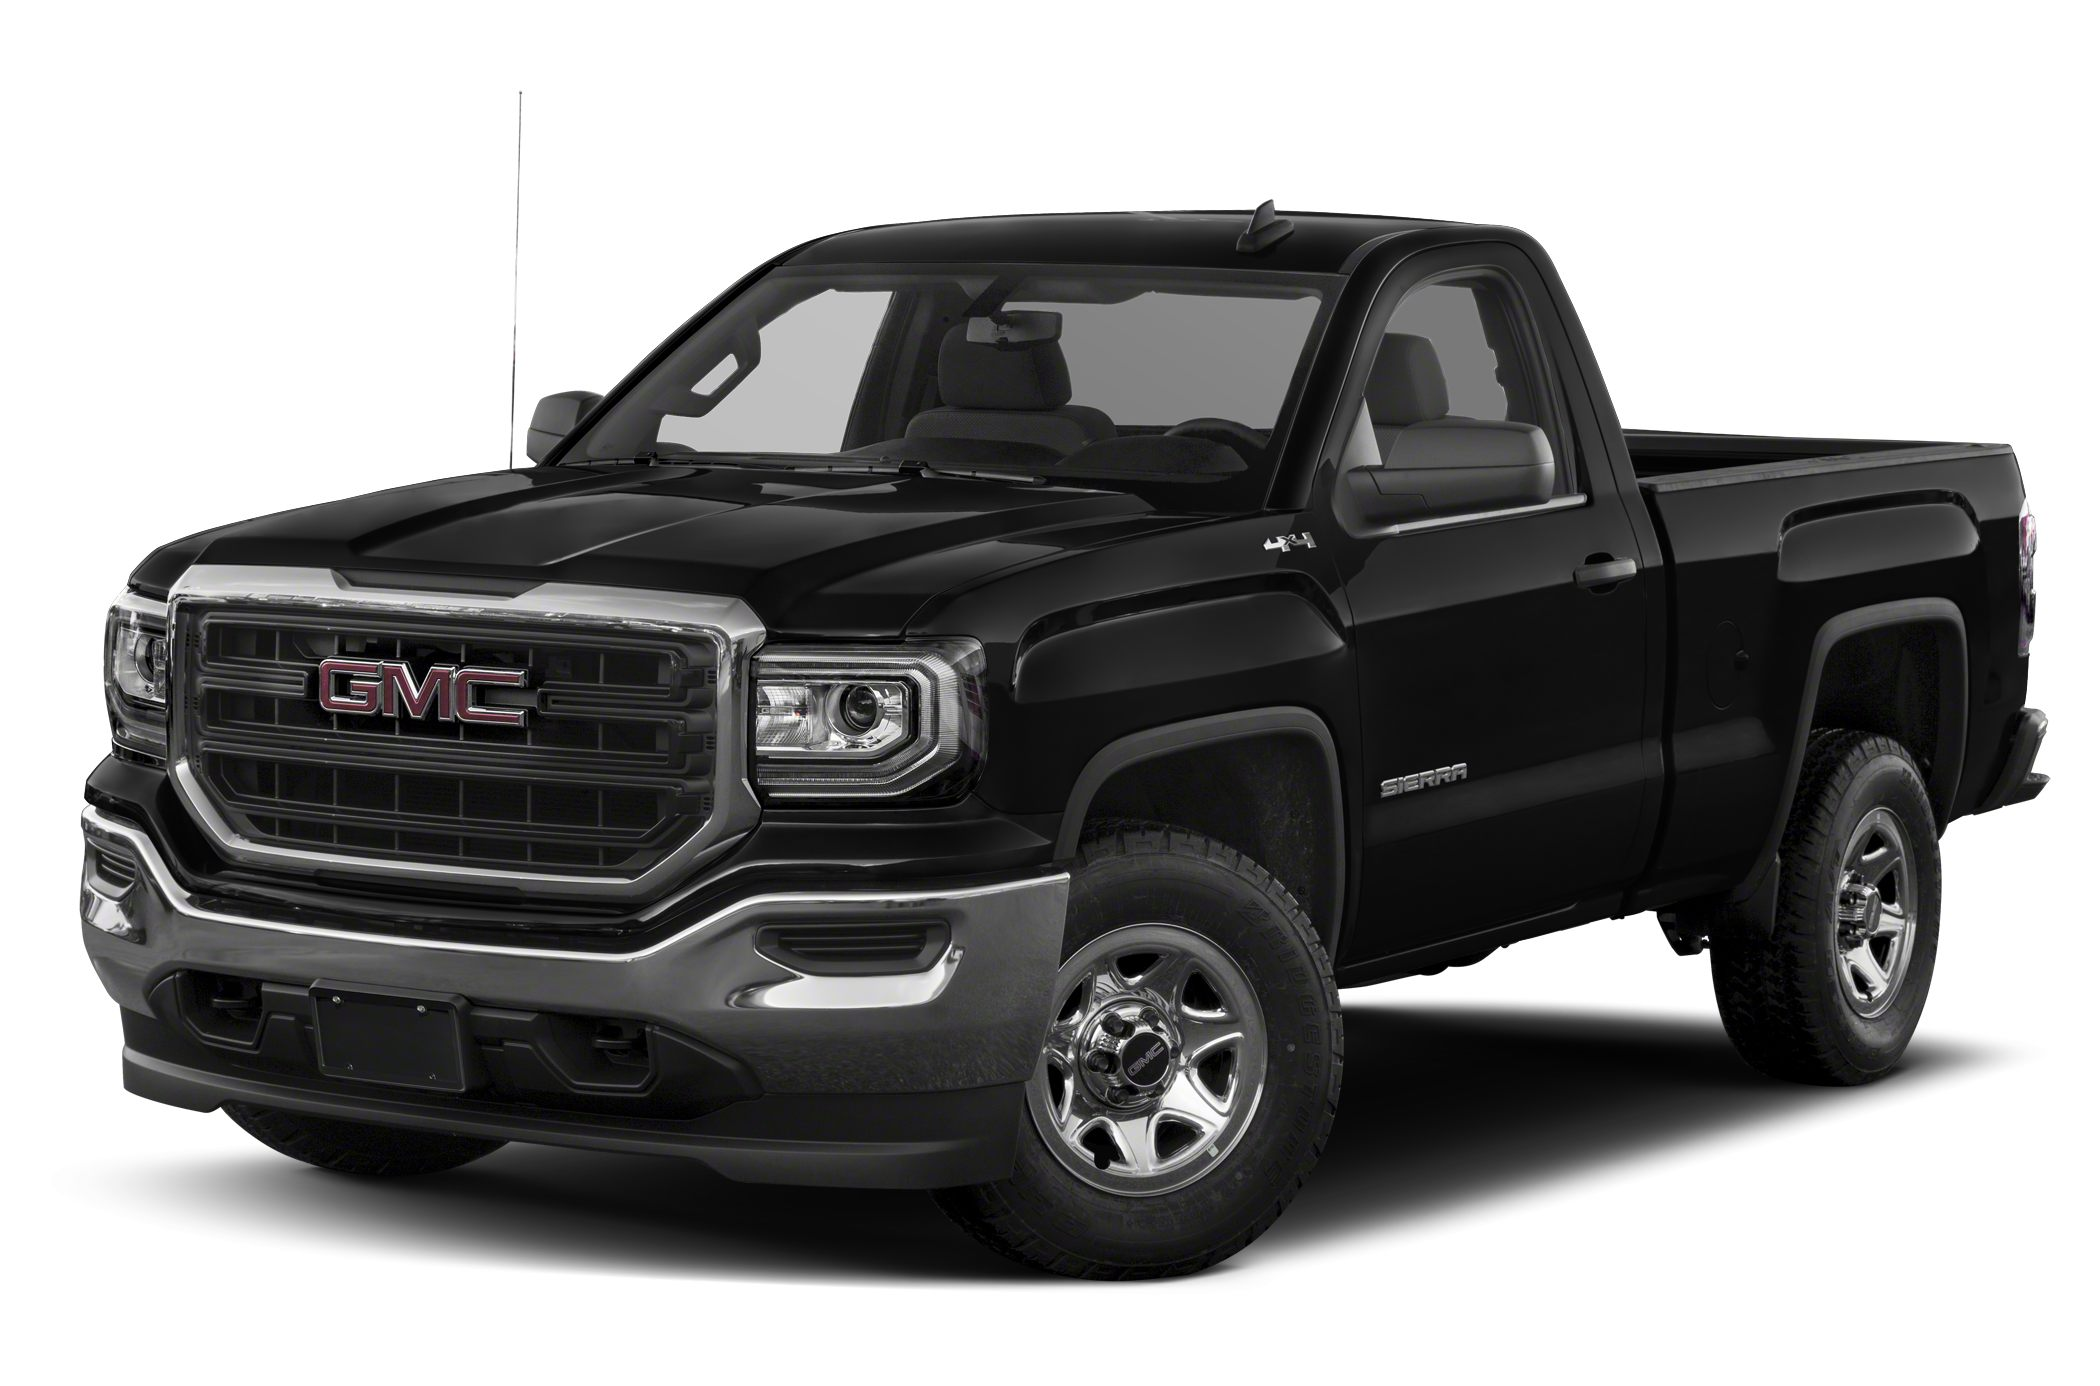 2017 Gmc Sierra 1500 Pricing And Specs